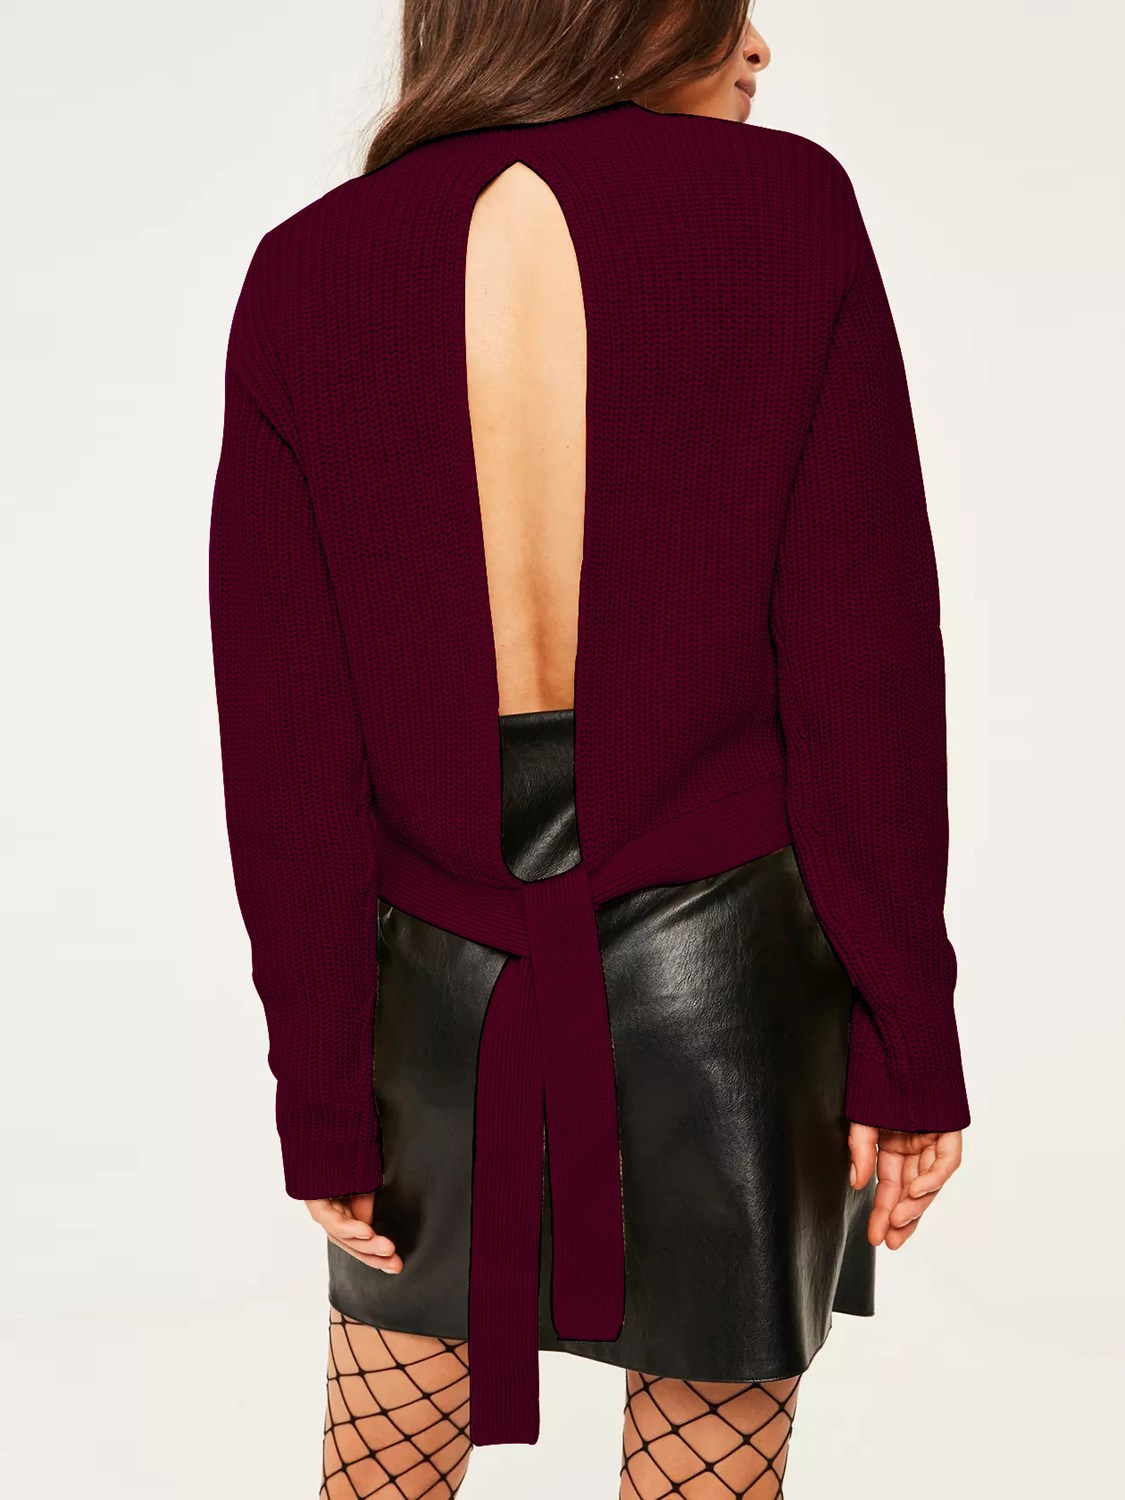 Compare Prices on Burgundy Sweater Women- Online Shopping/Buy Low ...